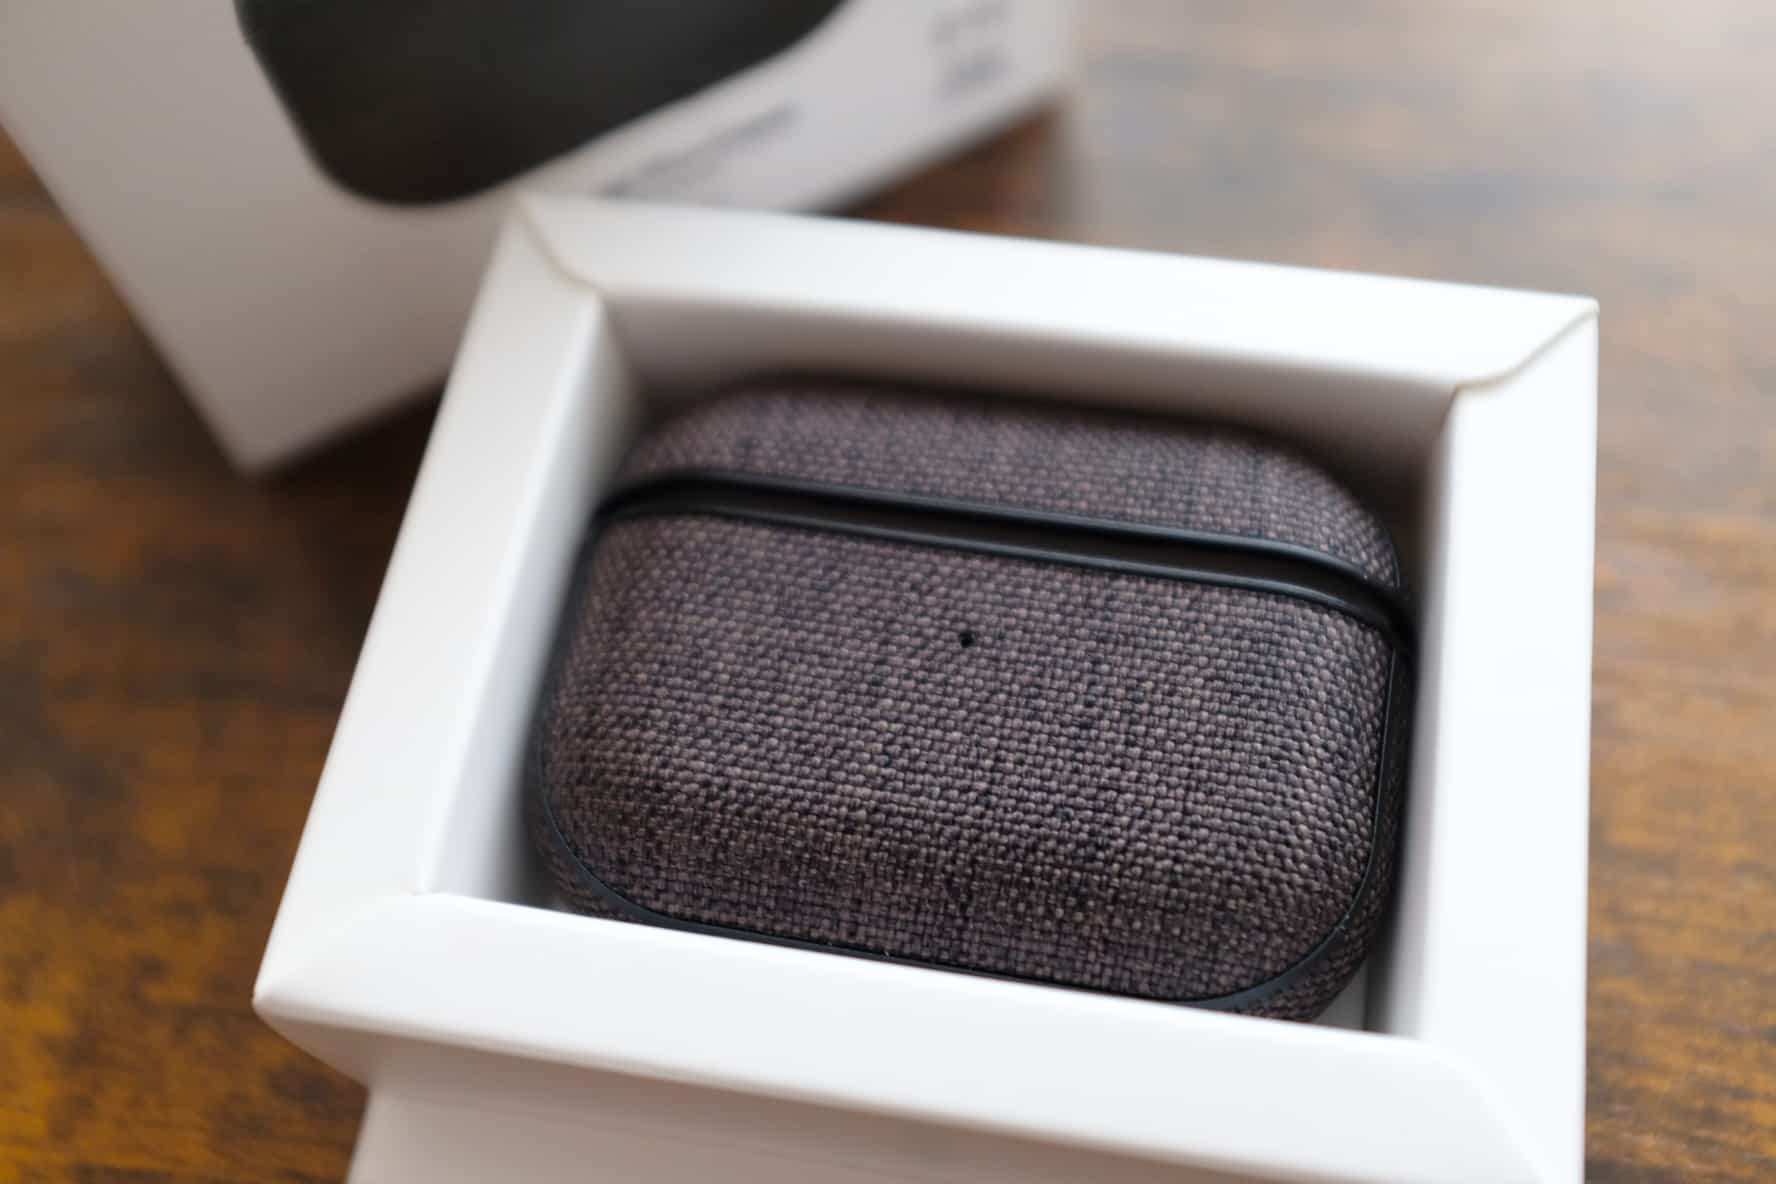 AirPods Pro.Incase AirPods Pro Case with Woolenex